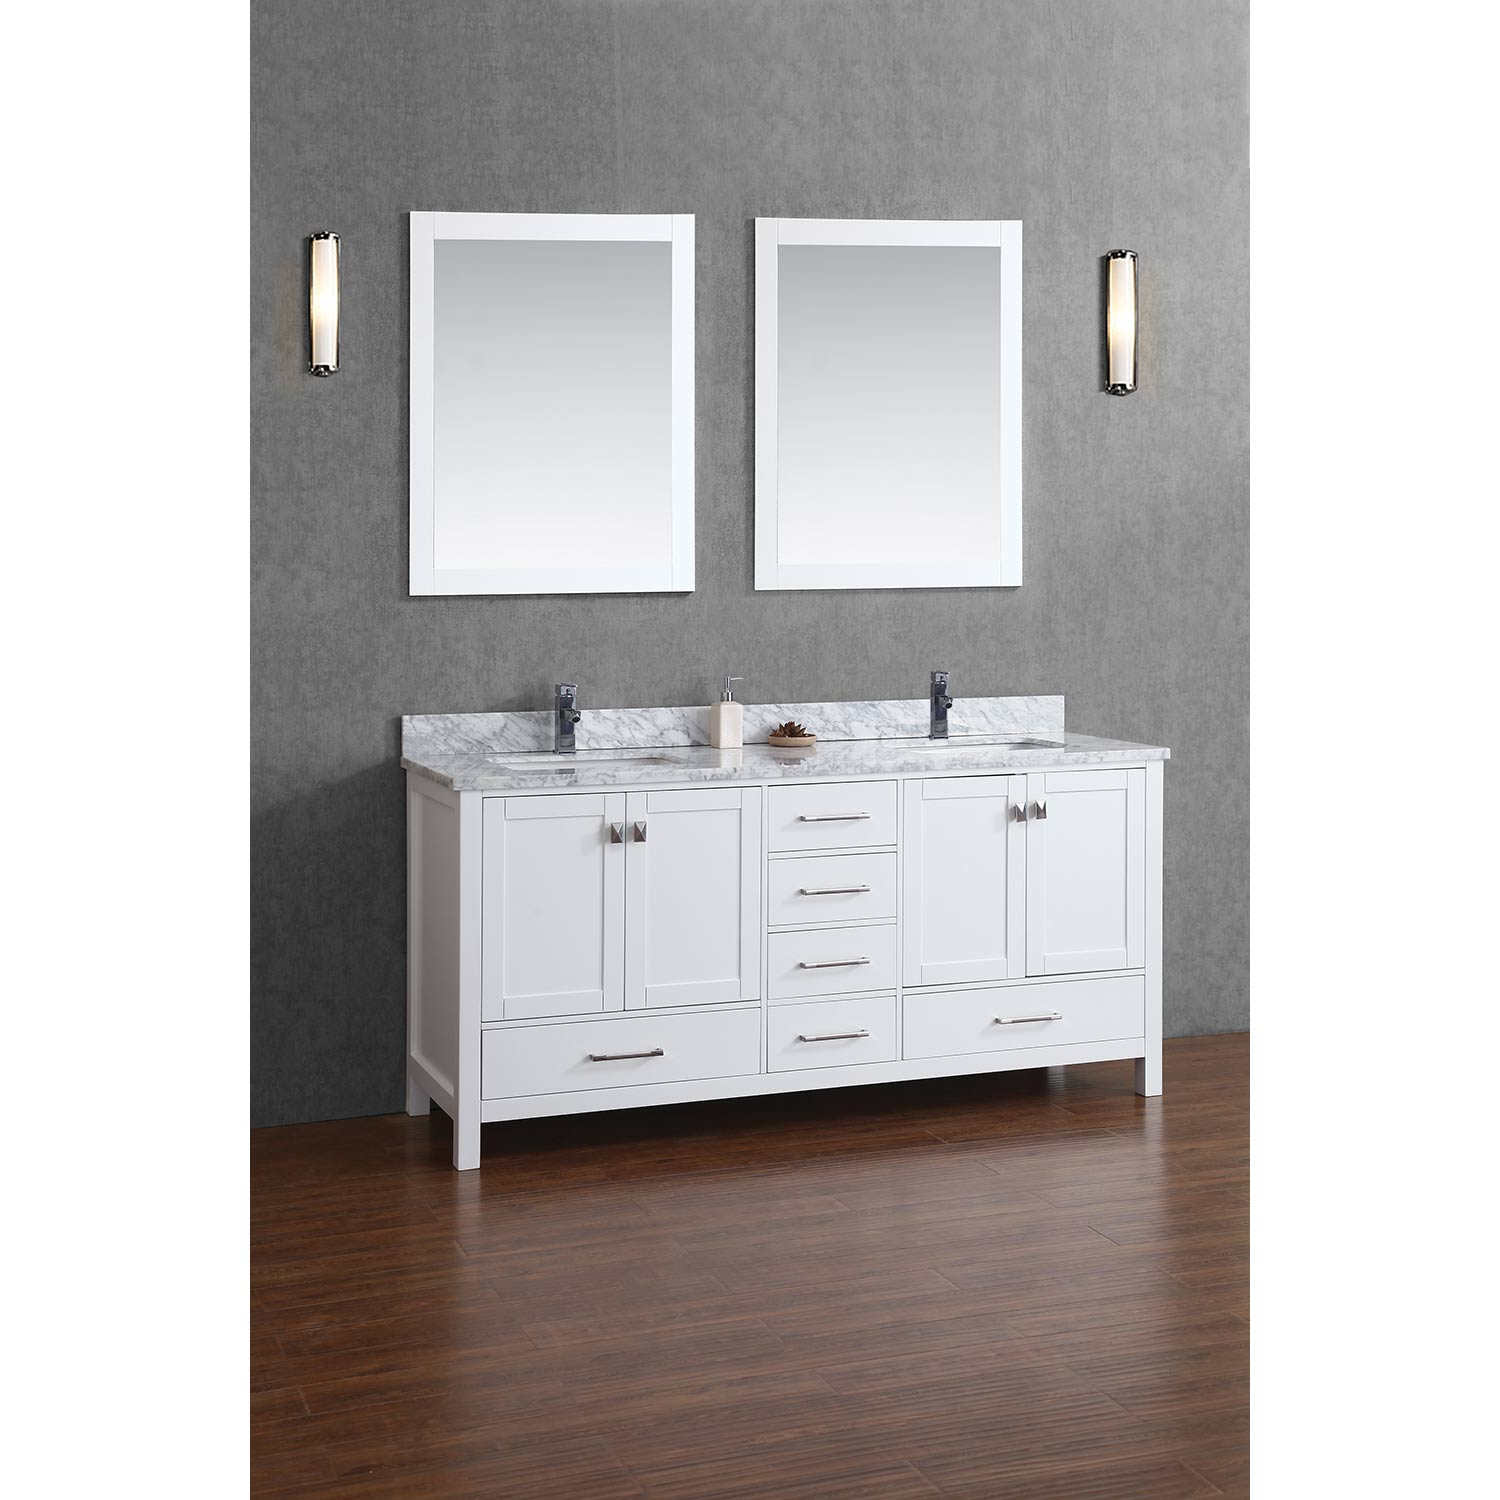 Buy vincent 72 inch solid wood double bathroom vanity in white hm 13001 72 wmsq wt for Solid wood double sink bathroom vanity